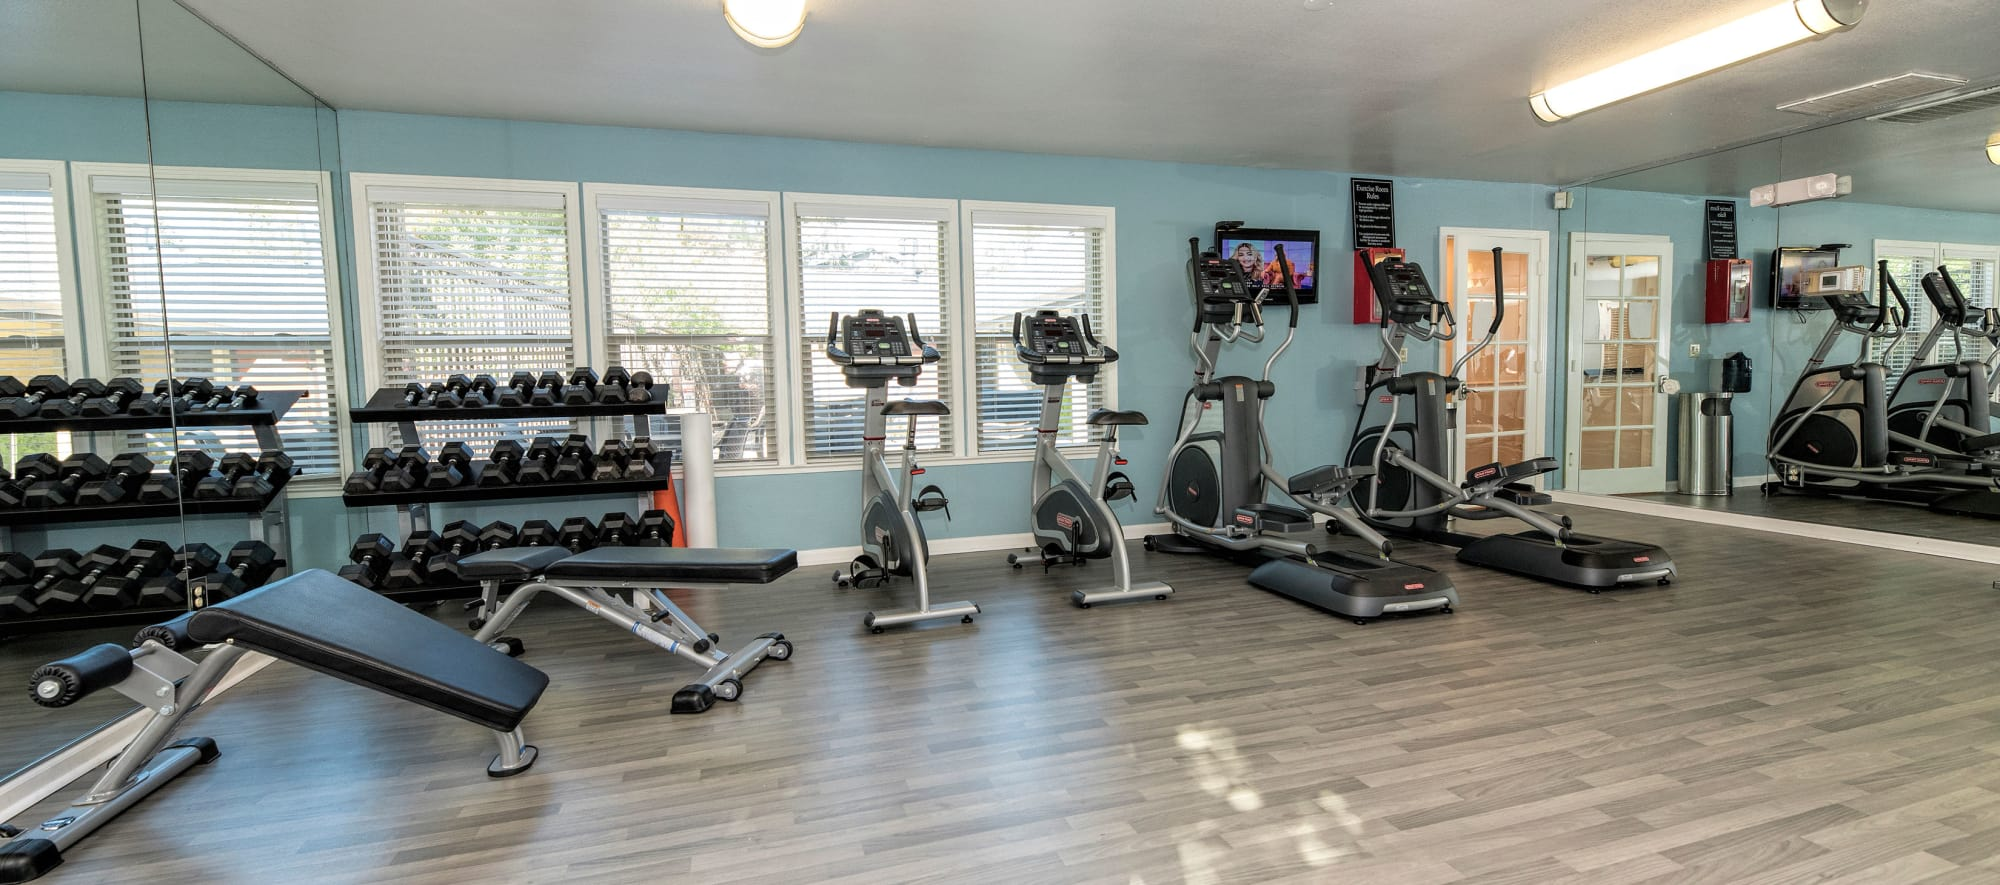 Fitness center at Sterling Heights Apartment Homes in Benicia, California